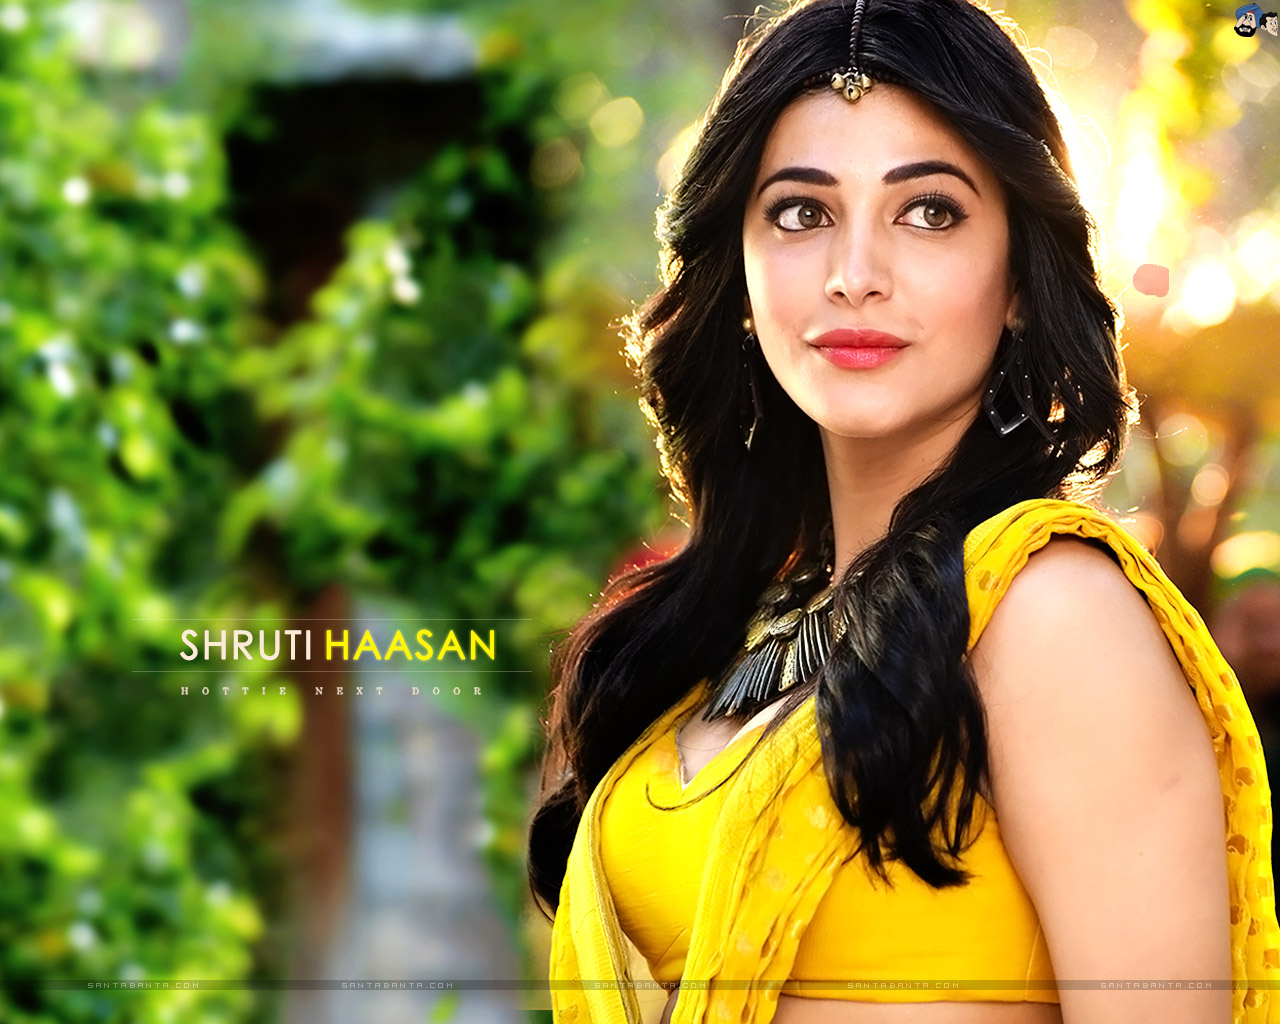 Cute Baby Girl Hd Wallpaper For Mobile Shruti Haasan Hd Wallpapers Most Beautiful Places In The